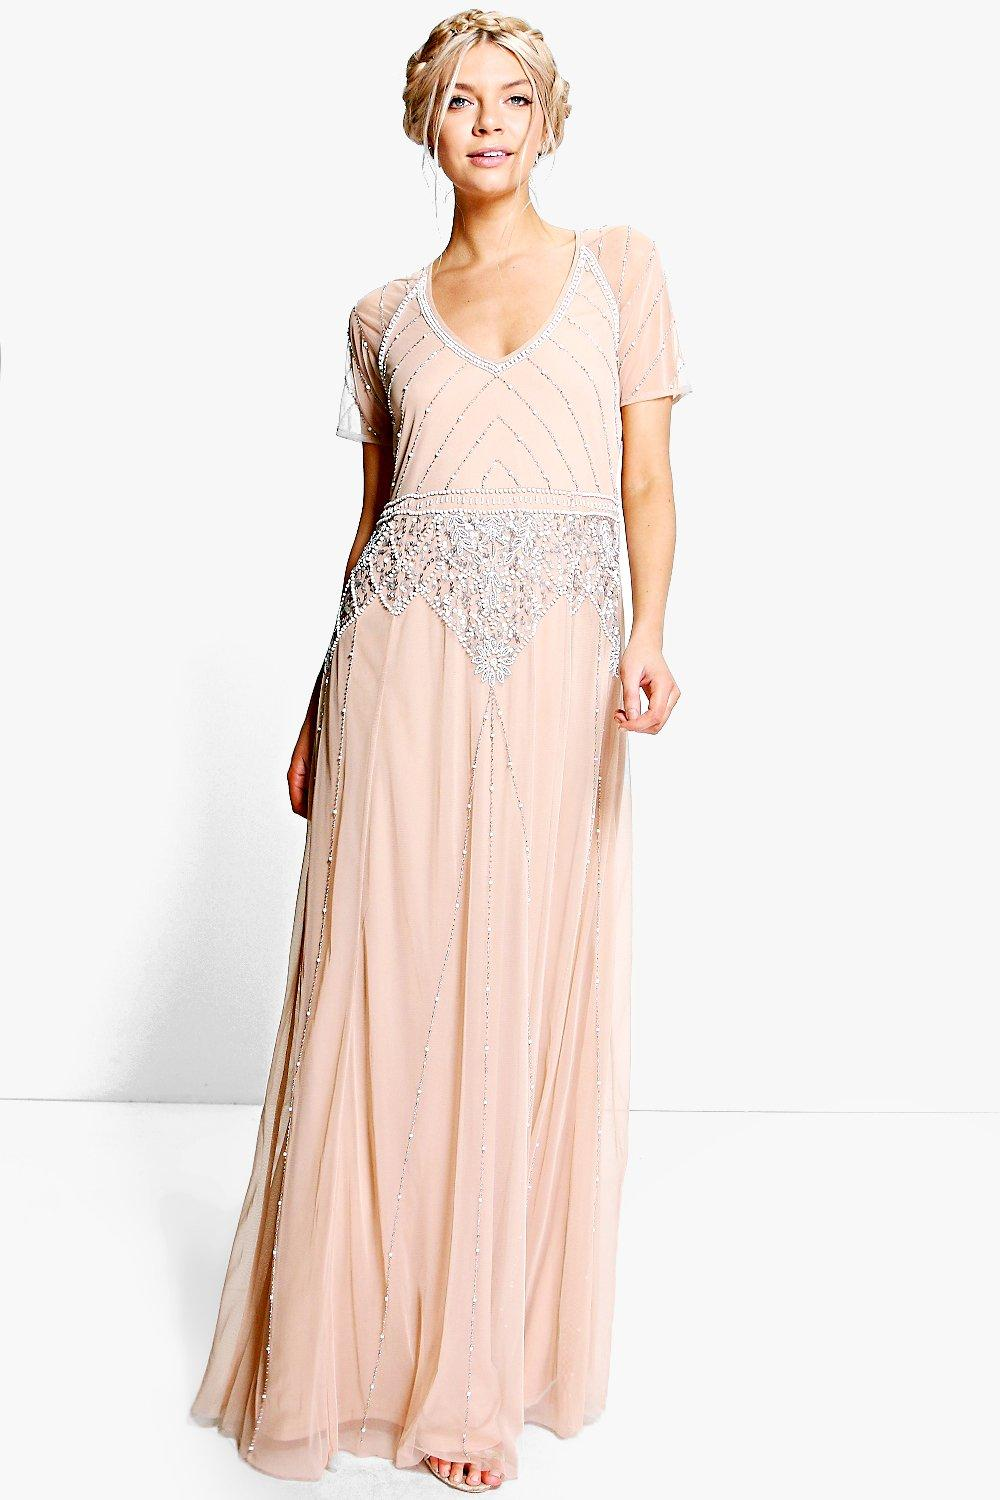 500 Vintage Style Dresses for Sale | Vintage Inspired Dresses Womens Boutique Beaded Cap Sleeve Maxi Bridesmaid Dress - Beige - 10 $28.00 AT vintagedancer.com